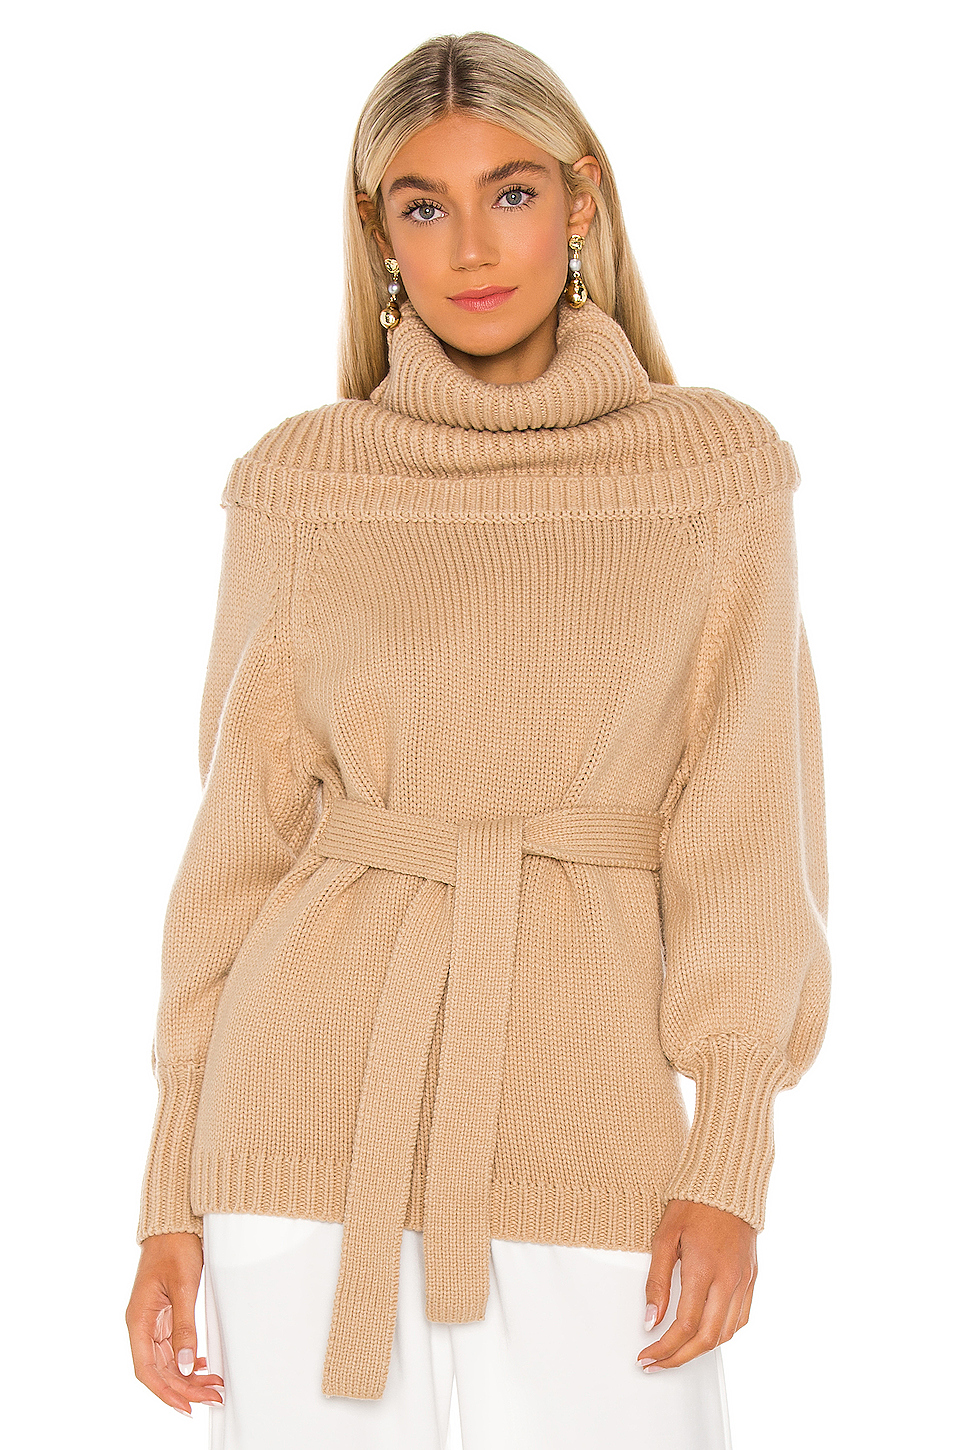 Casual gifts for women: stylish wool sweaters